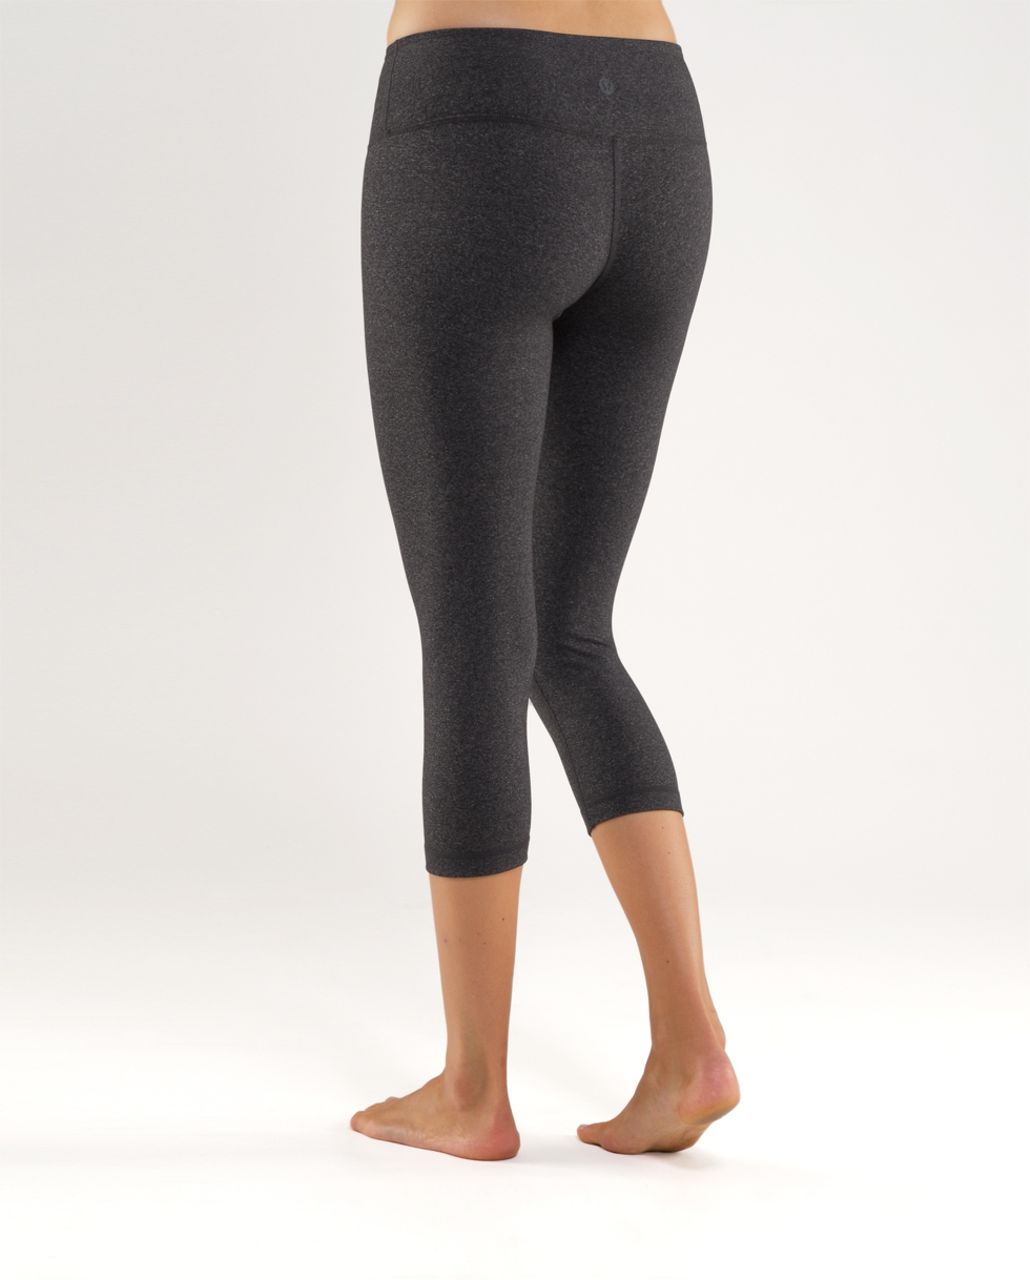 Lululemon Wunder Under Crop - Heathered Black